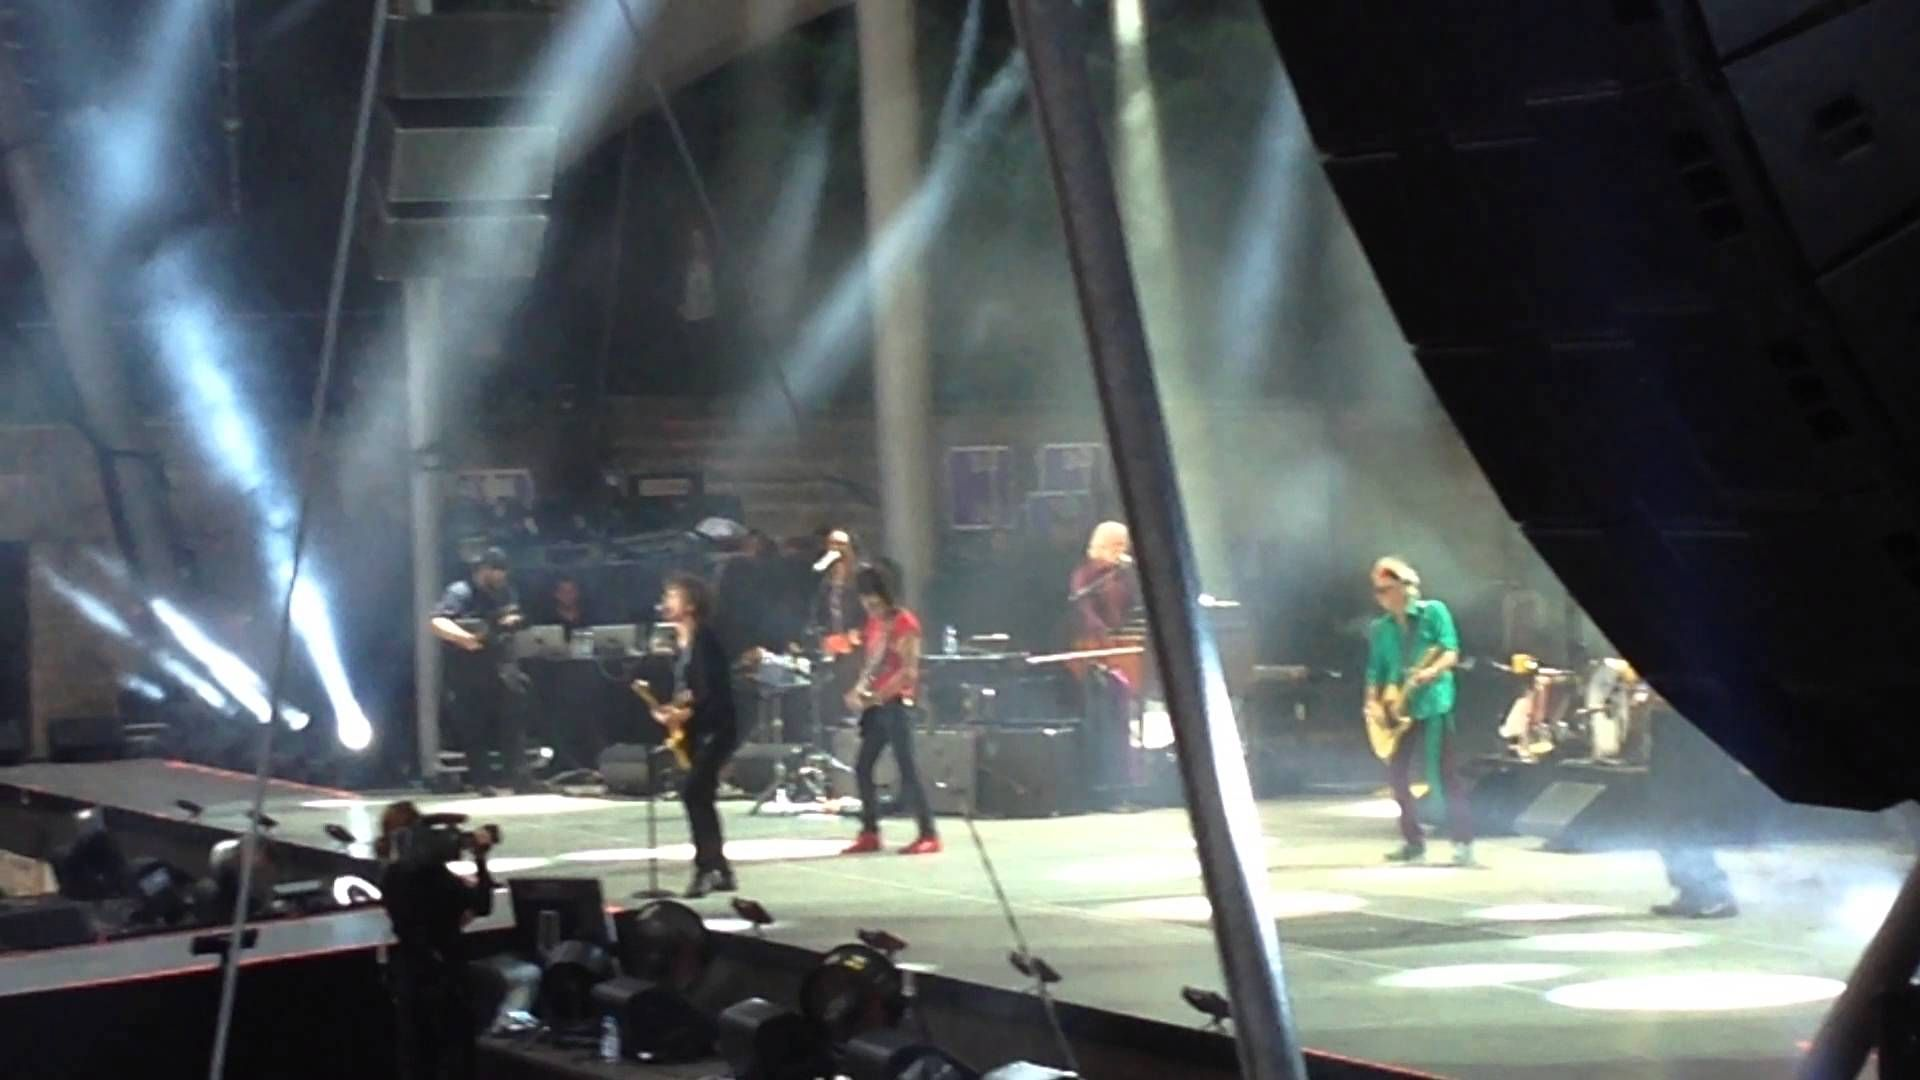 The Rolling Stones - Doom and gloom @ Waldbuhne Berlin 10.06.14